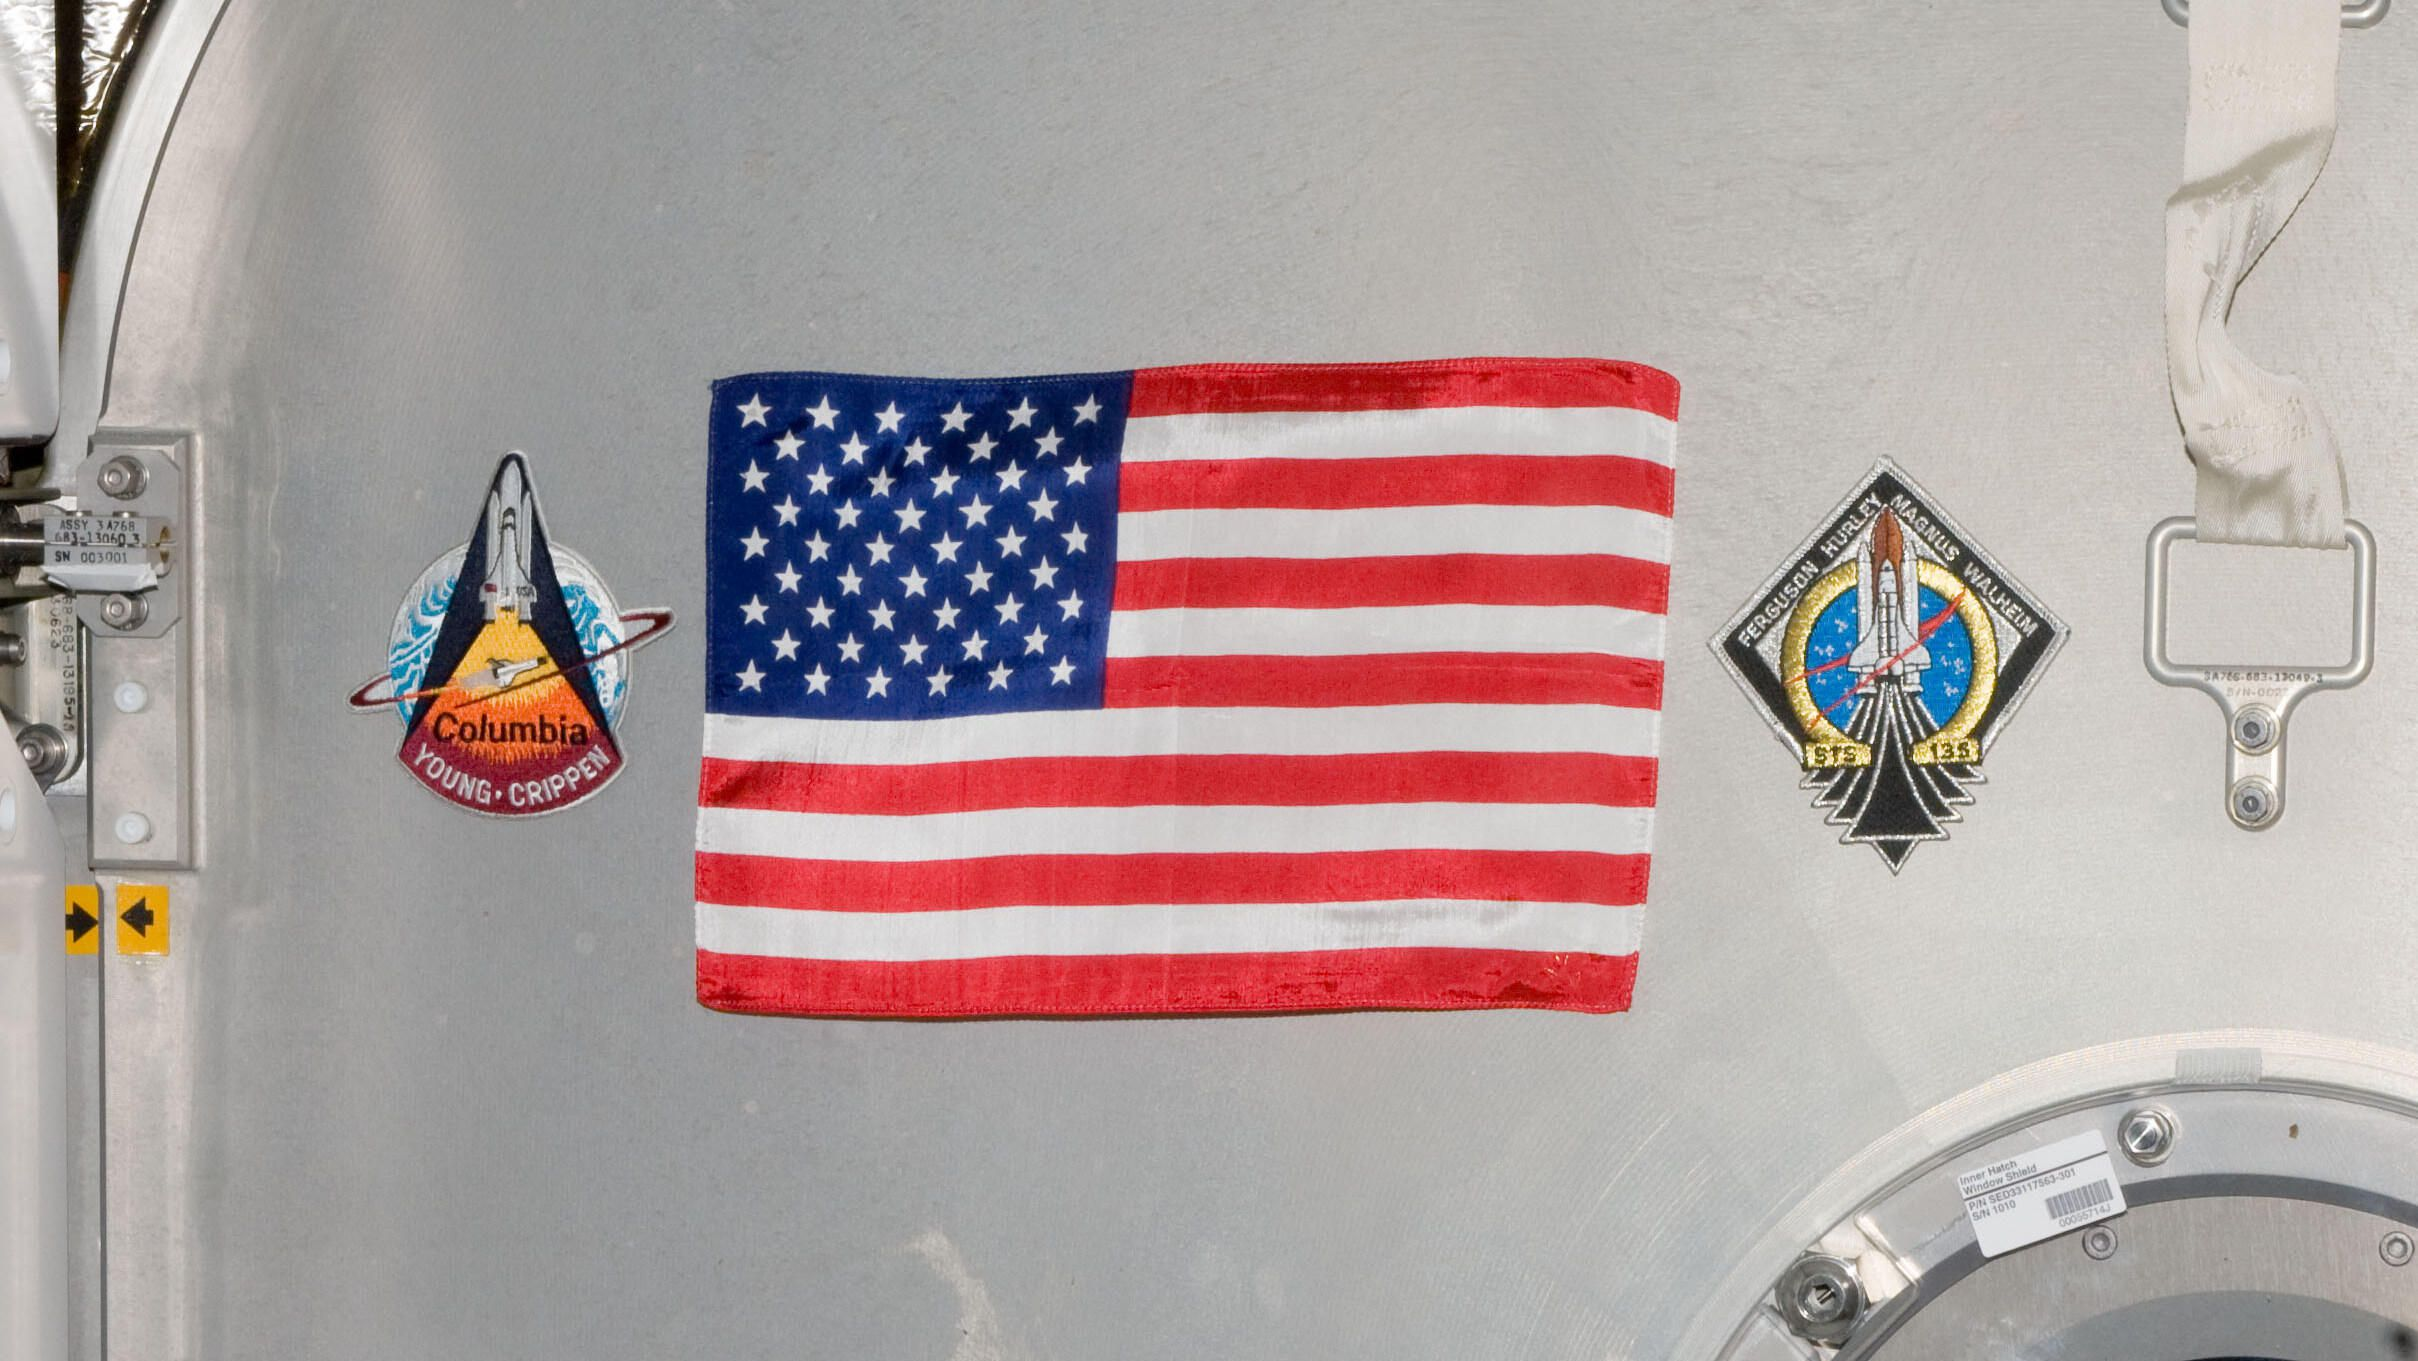 NASA's SpaceX astronauts to bring back a very special flag from the ISS